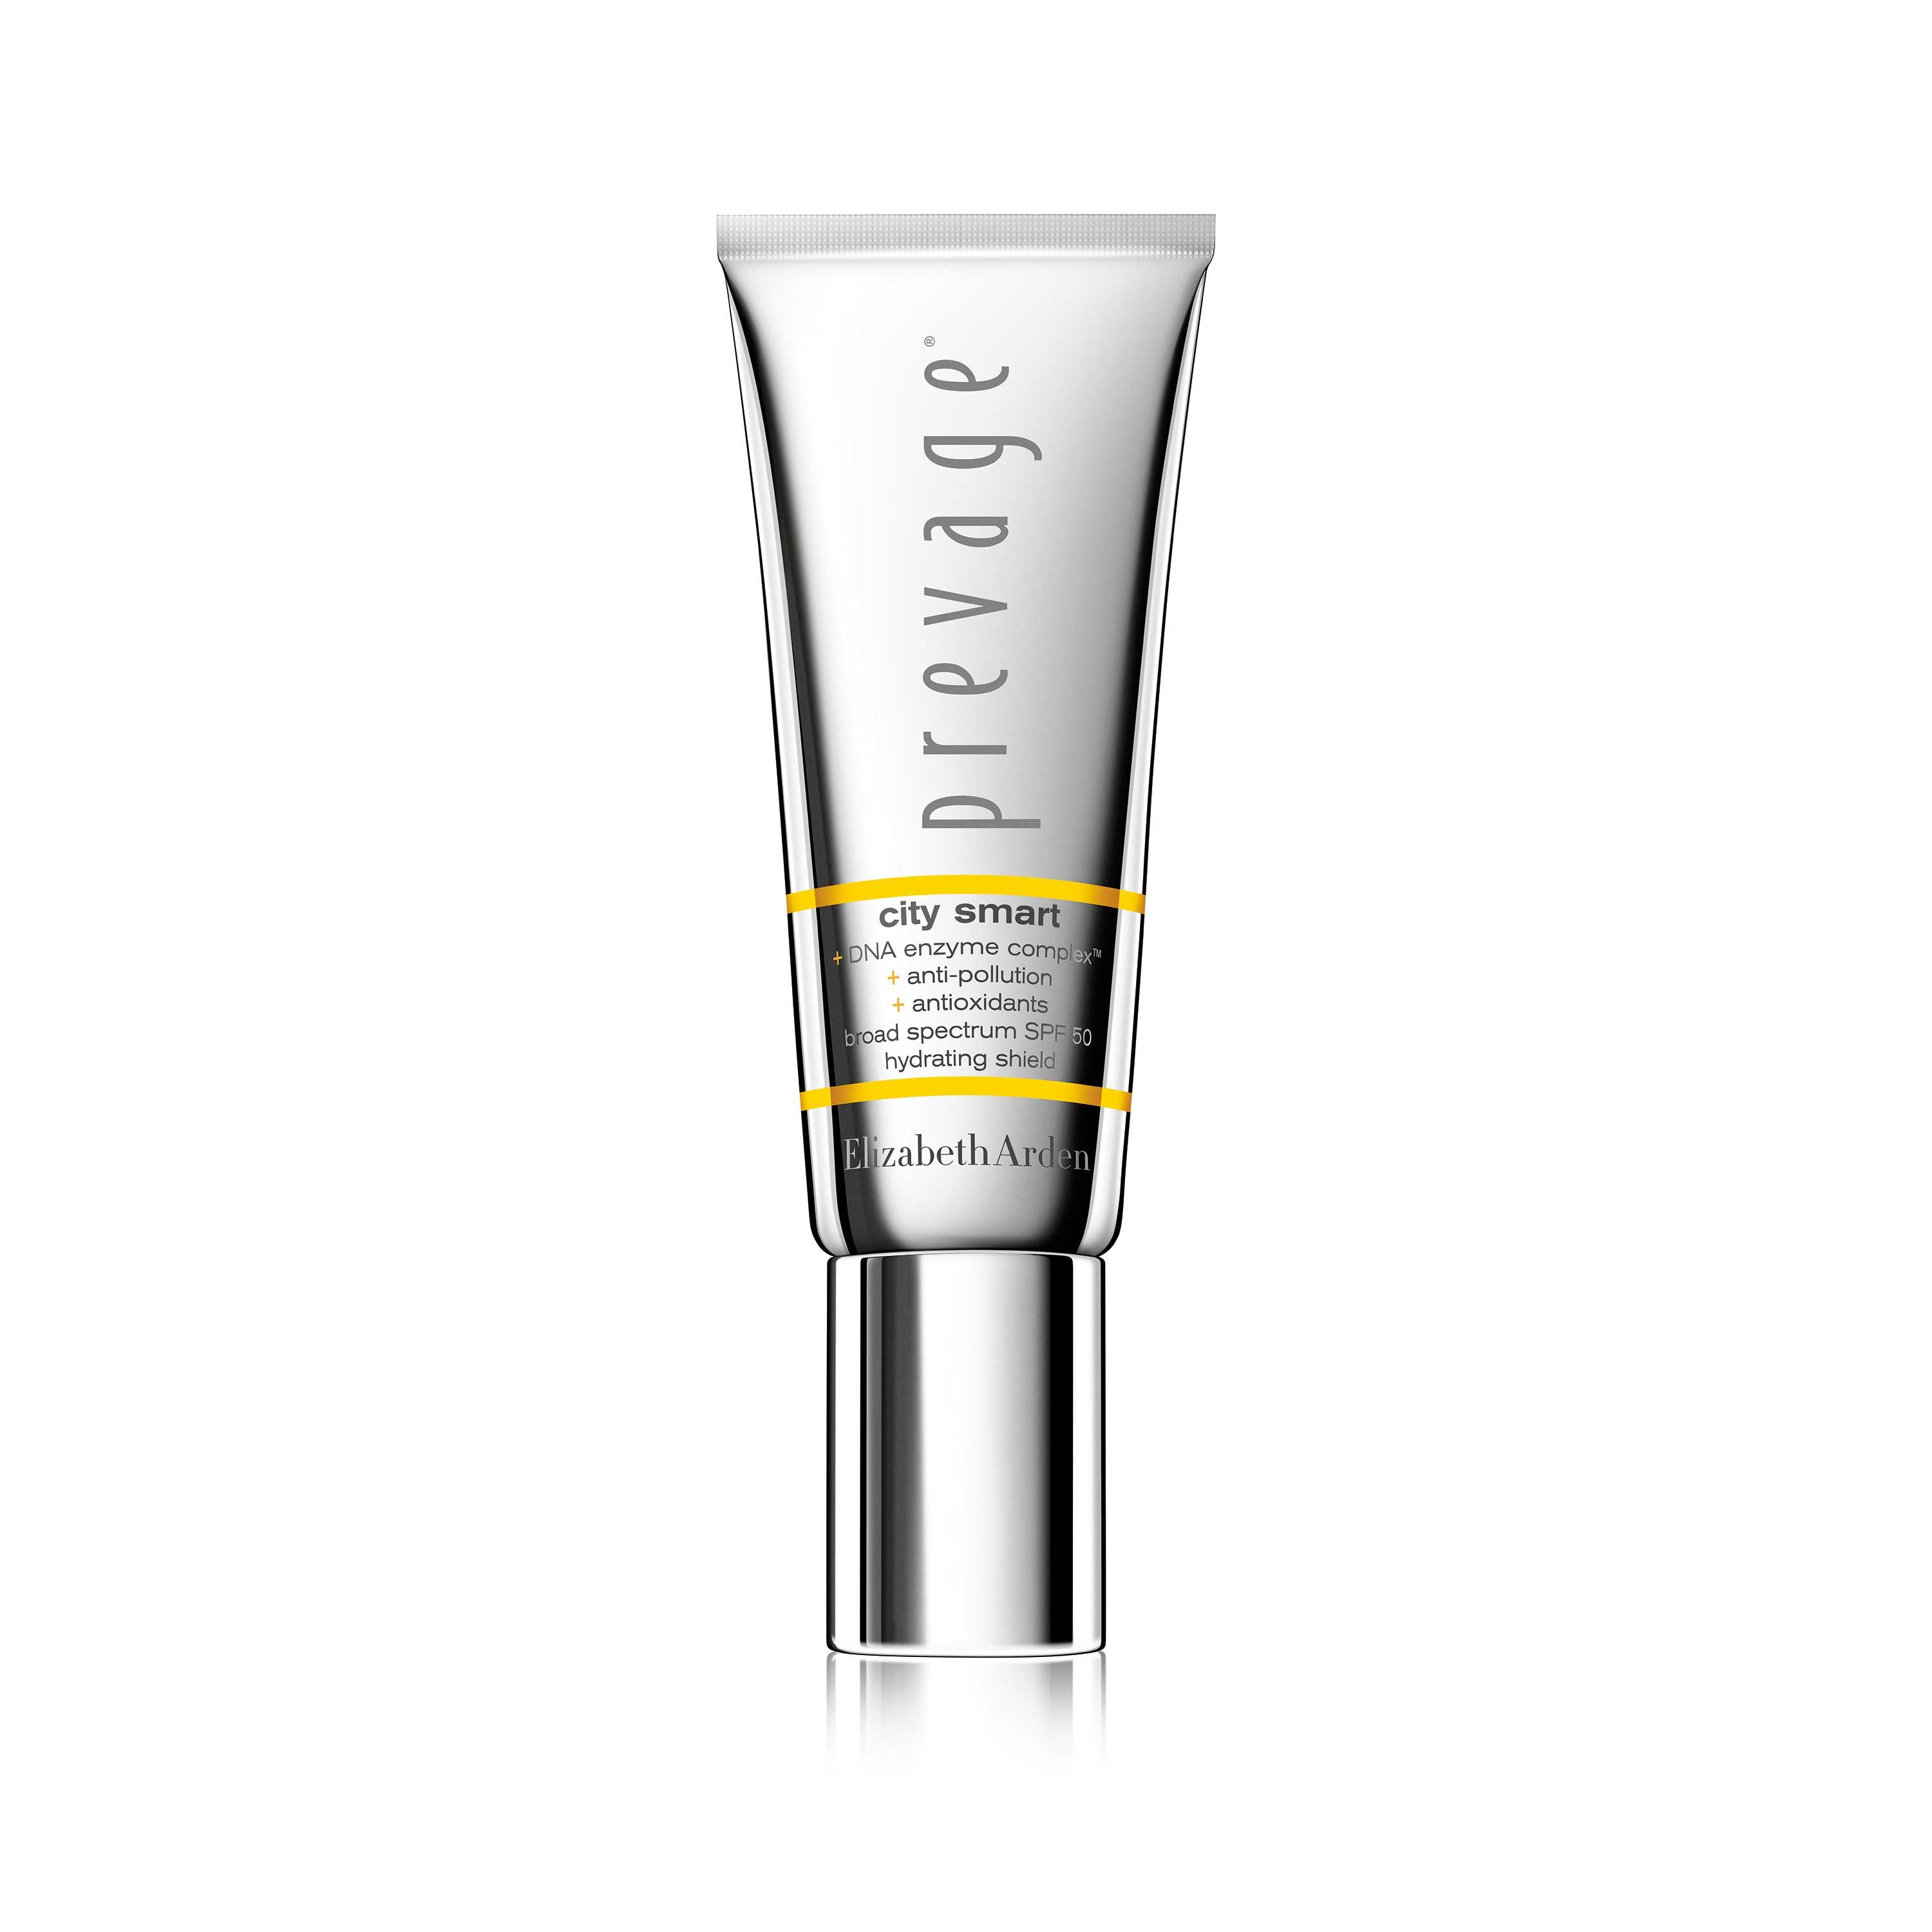 "<p><strong data-redactor-tag=""strong"" data-verified=""redactor"">Elizabeth Arden Prevage City Smart Broad Spectrum SPF 50 Hydrating Shield</strong><span class=""redactor-invisible-space"" data-verified=""redactor"" data-redactor-tag=""span"" data-redactor-class=""redactor-invisible-space""><strong data-redactor-tag=""strong"" data-verified=""redactor""></strong></span><br></p><p>I feel a little bit like Stefon, Bill Hader's club promoter character from <i data-redactor-tag=""i"">Saturday Night Live</i>'s Weekend Update, when talking about this product because…it has everything. Antioxidants, including a trio of tried-and-true ones beloved by dermatologists: green tea, idebenone, and ferulic acid. A mineral SPF of 50. A slippery texture that acts as a makeup primer. A slight tint to even out discoloration. An airless pump to keep the formula finger—and thus dirt—free. And a finish that leaves skin glossy and dewy (though, admittedly, this does not last for longer than an hour or so). It's not quite thick enough to double as a moisturizer, but it has eliminated the need for foundation on weekend days, when I tend to wear less makeup. It's not New York's hottest club, but it's at the edge of my shelf. </p><p>$68, <a href=""http://www.elizabetharden.com/prevage-city-smart-hydrating-shield-1001A0100498.html?cgid=city-smart"" target=""_blank"" data-tracking-id=""recirc-text-link"">elizabetharden.com</a> </p>"